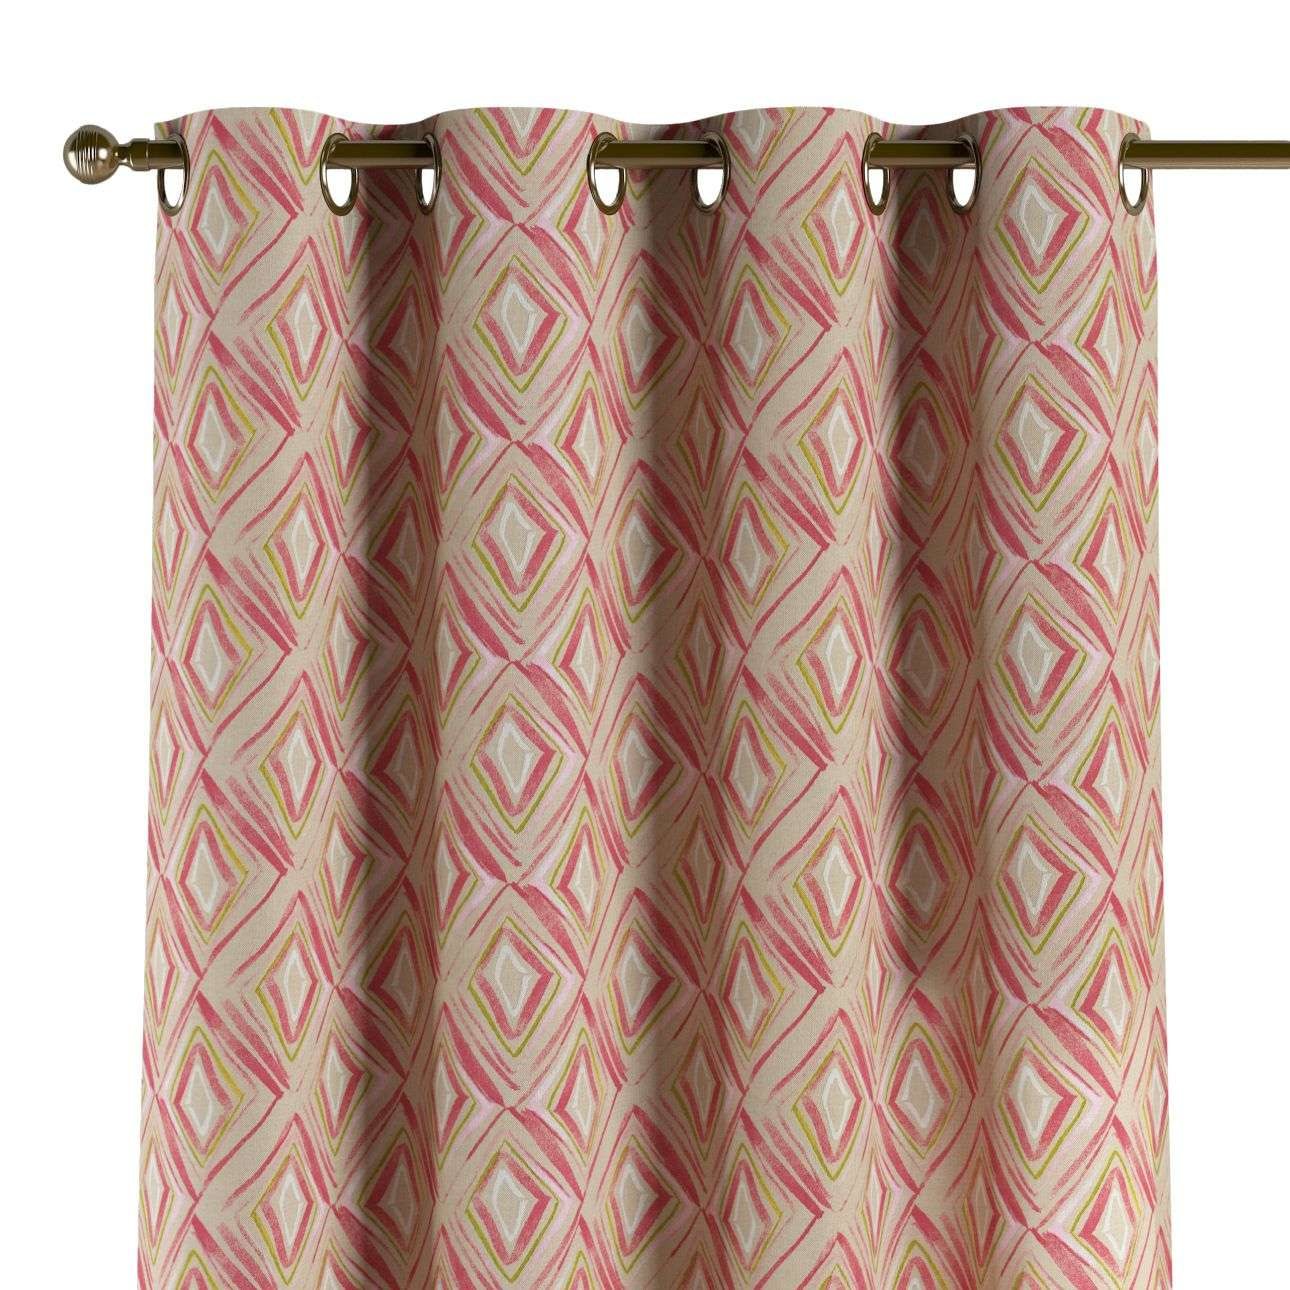 Eyelet curtains 130 x 260 cm (51 x 102 inch) in collection Londres, fabric: 140-45